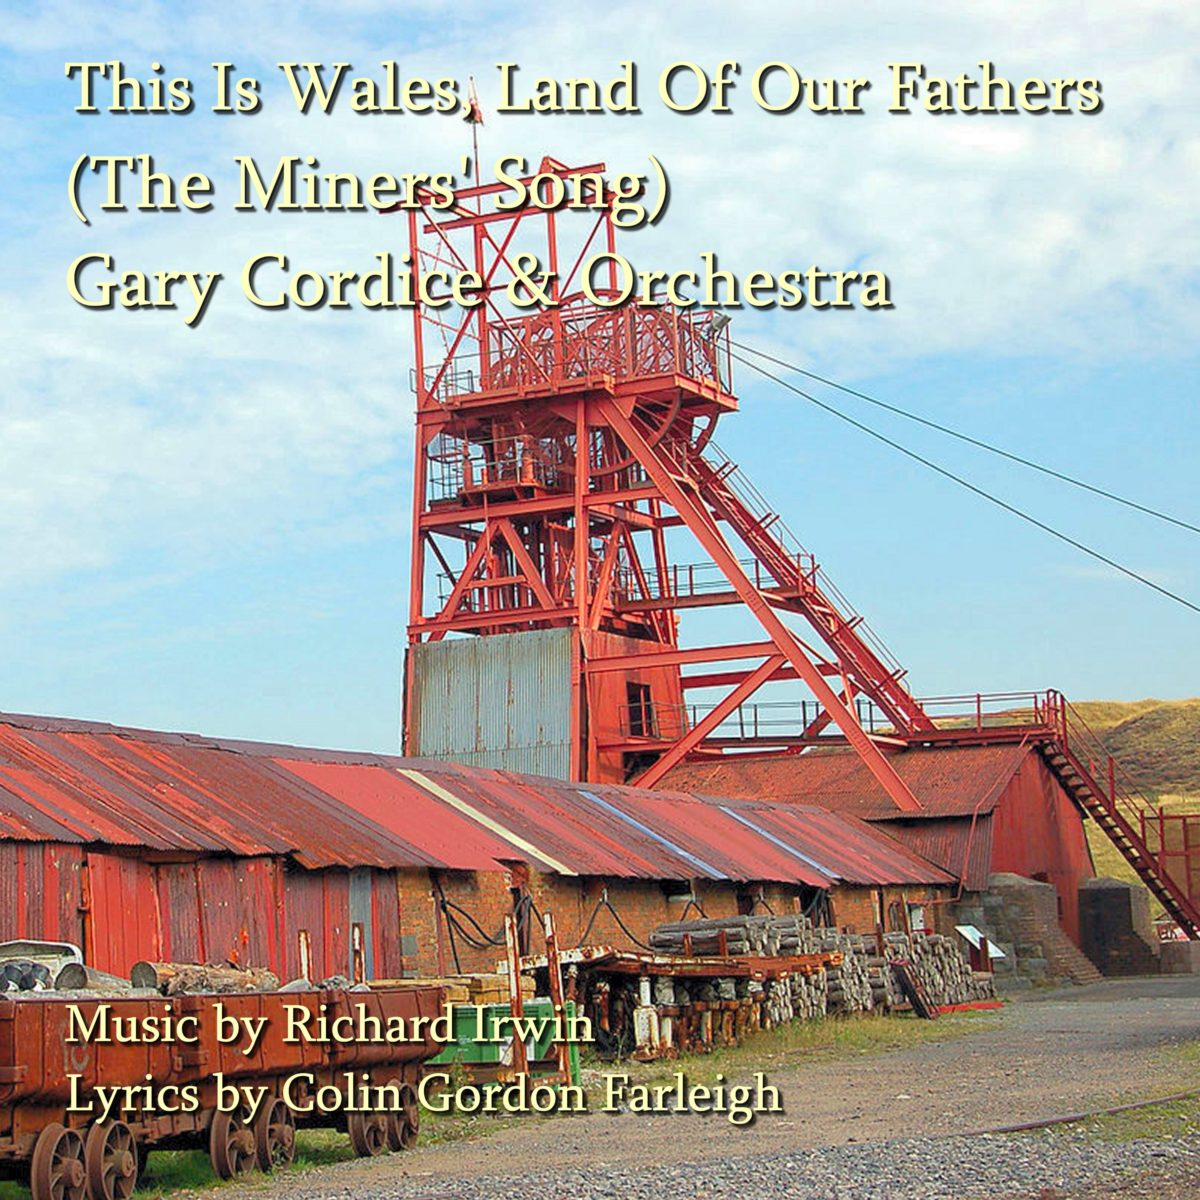 This Is Wales Land Of Our Fathers (The Miner'S Song – 2 Verses) – Voice And Orchestra, Male Voice Choir